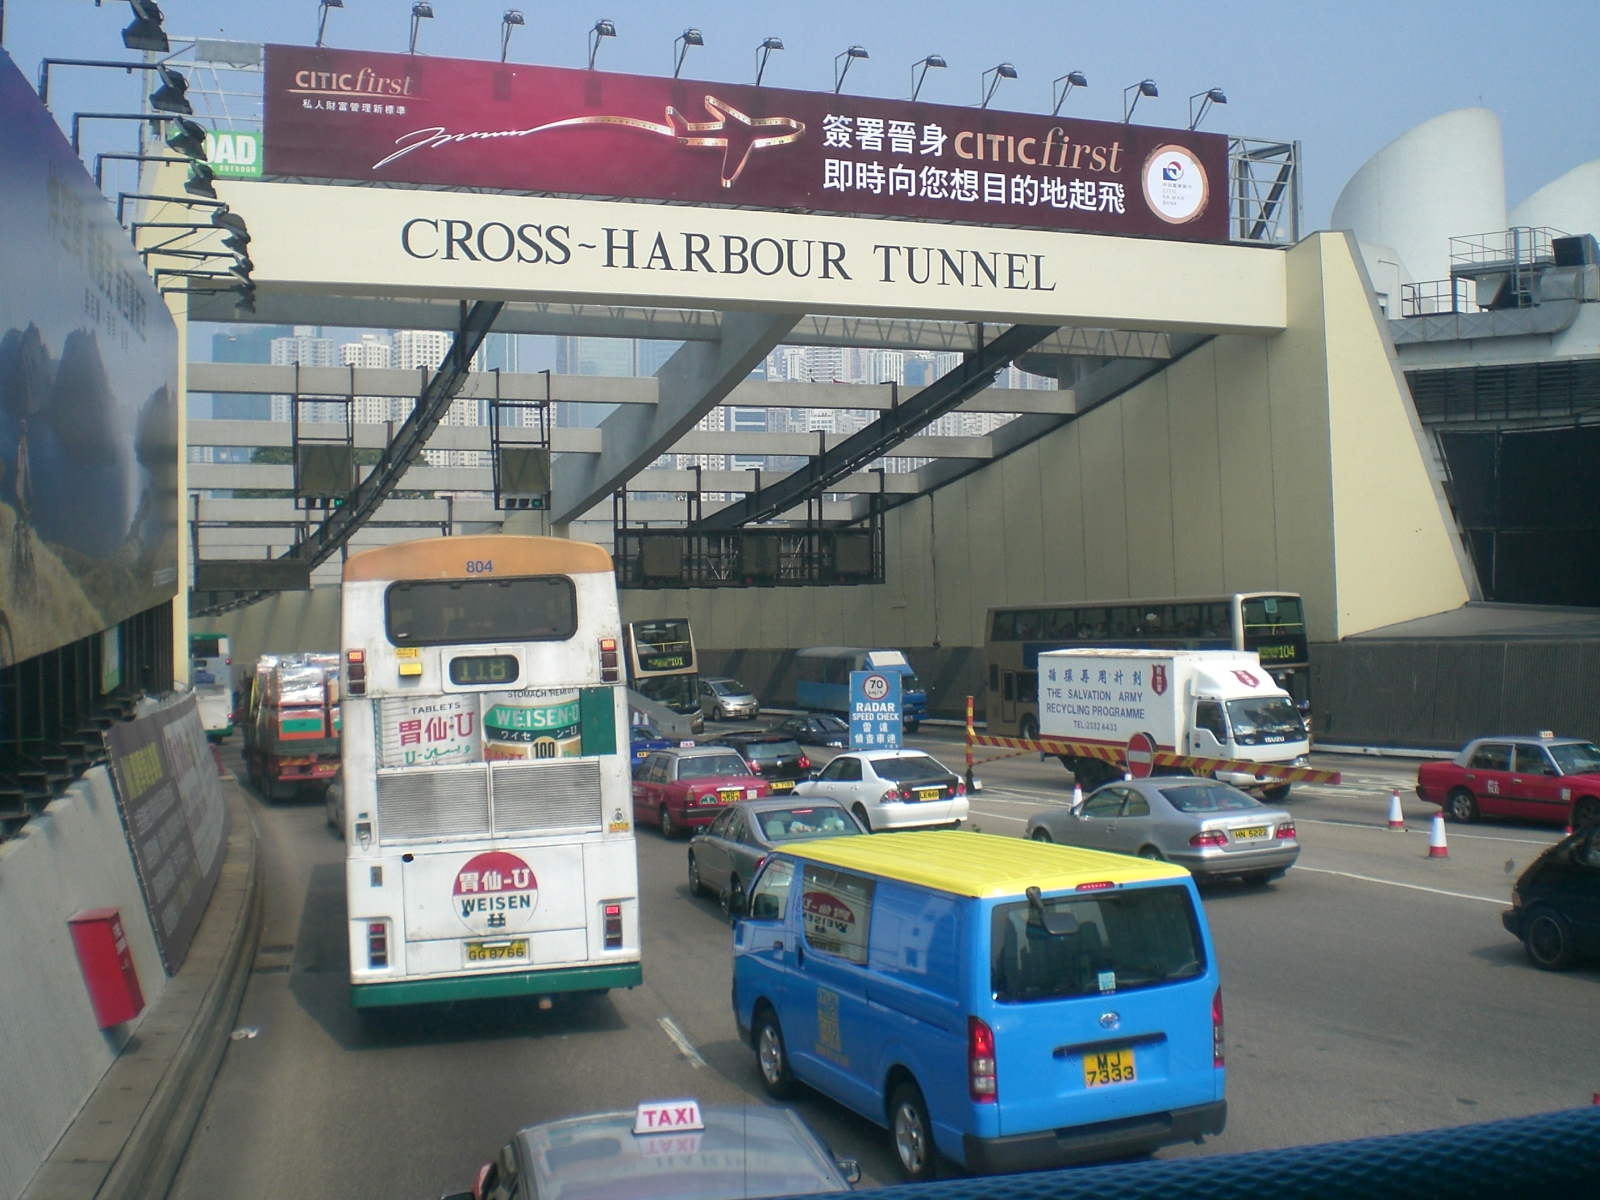 File:HK CWB-Hung Hum Cross-Harbour Tunnel 2 Citibank Ads.JPG ...